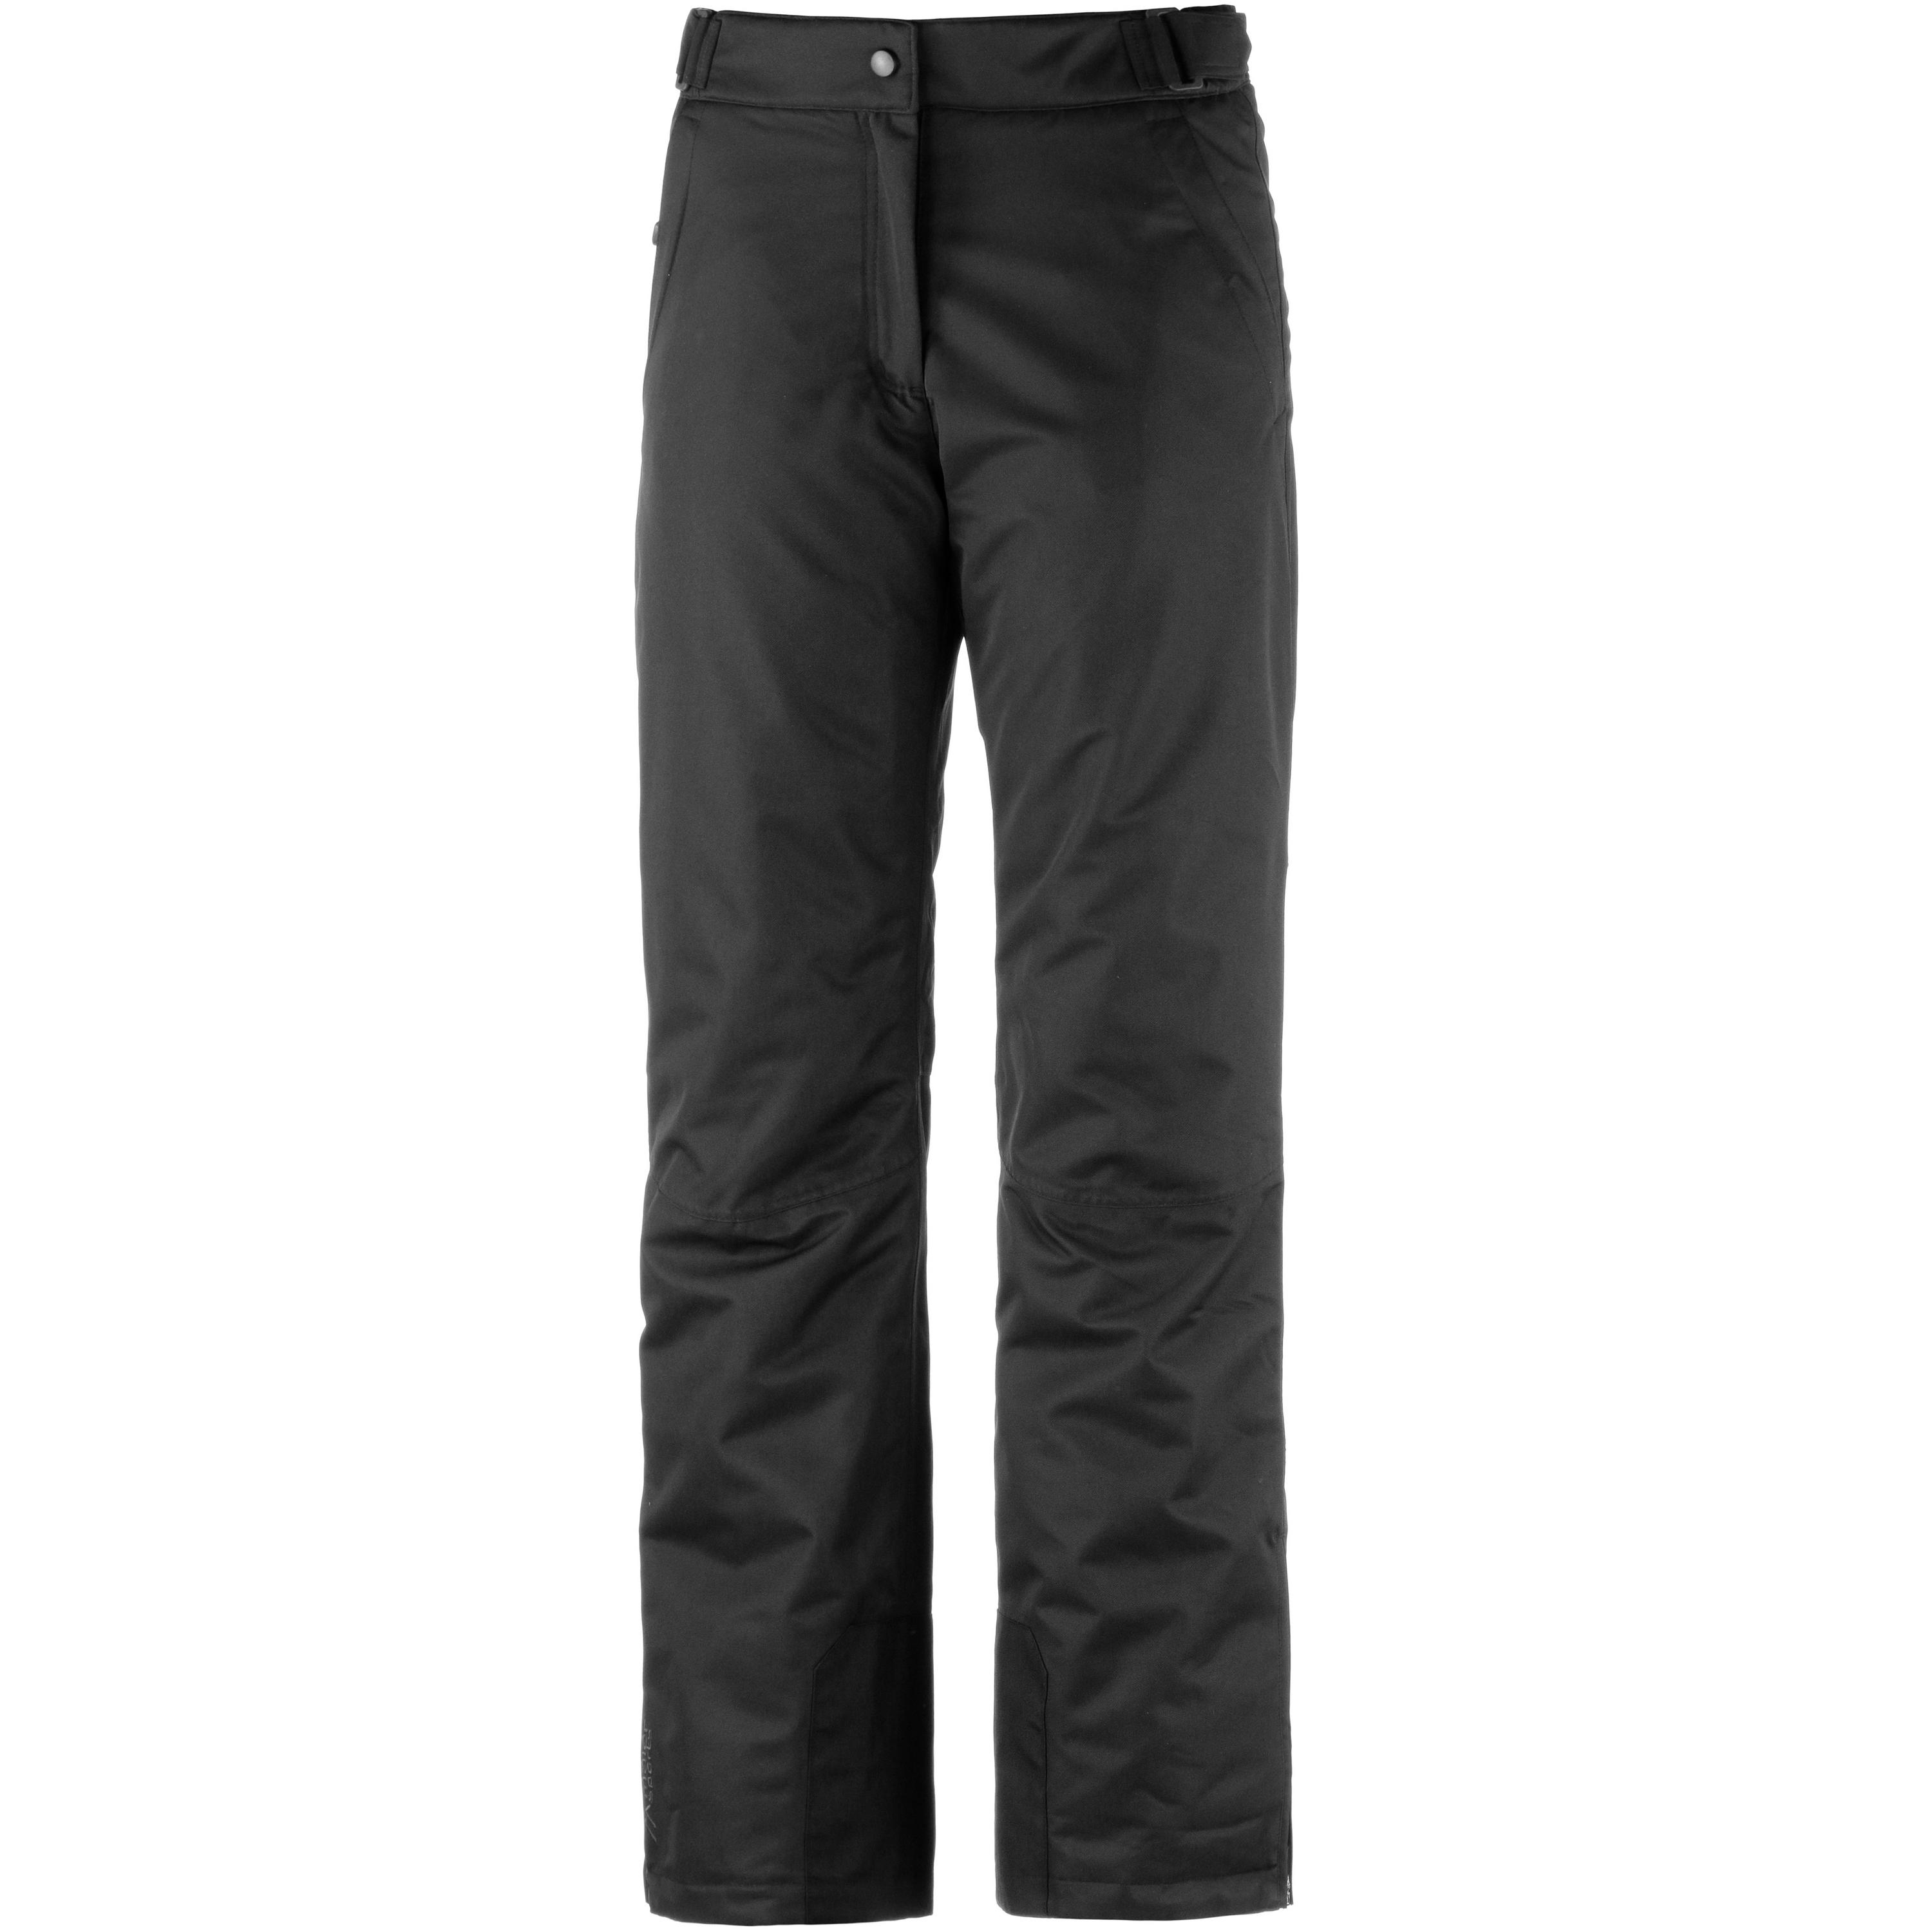 Maier Sports Skihose Damen